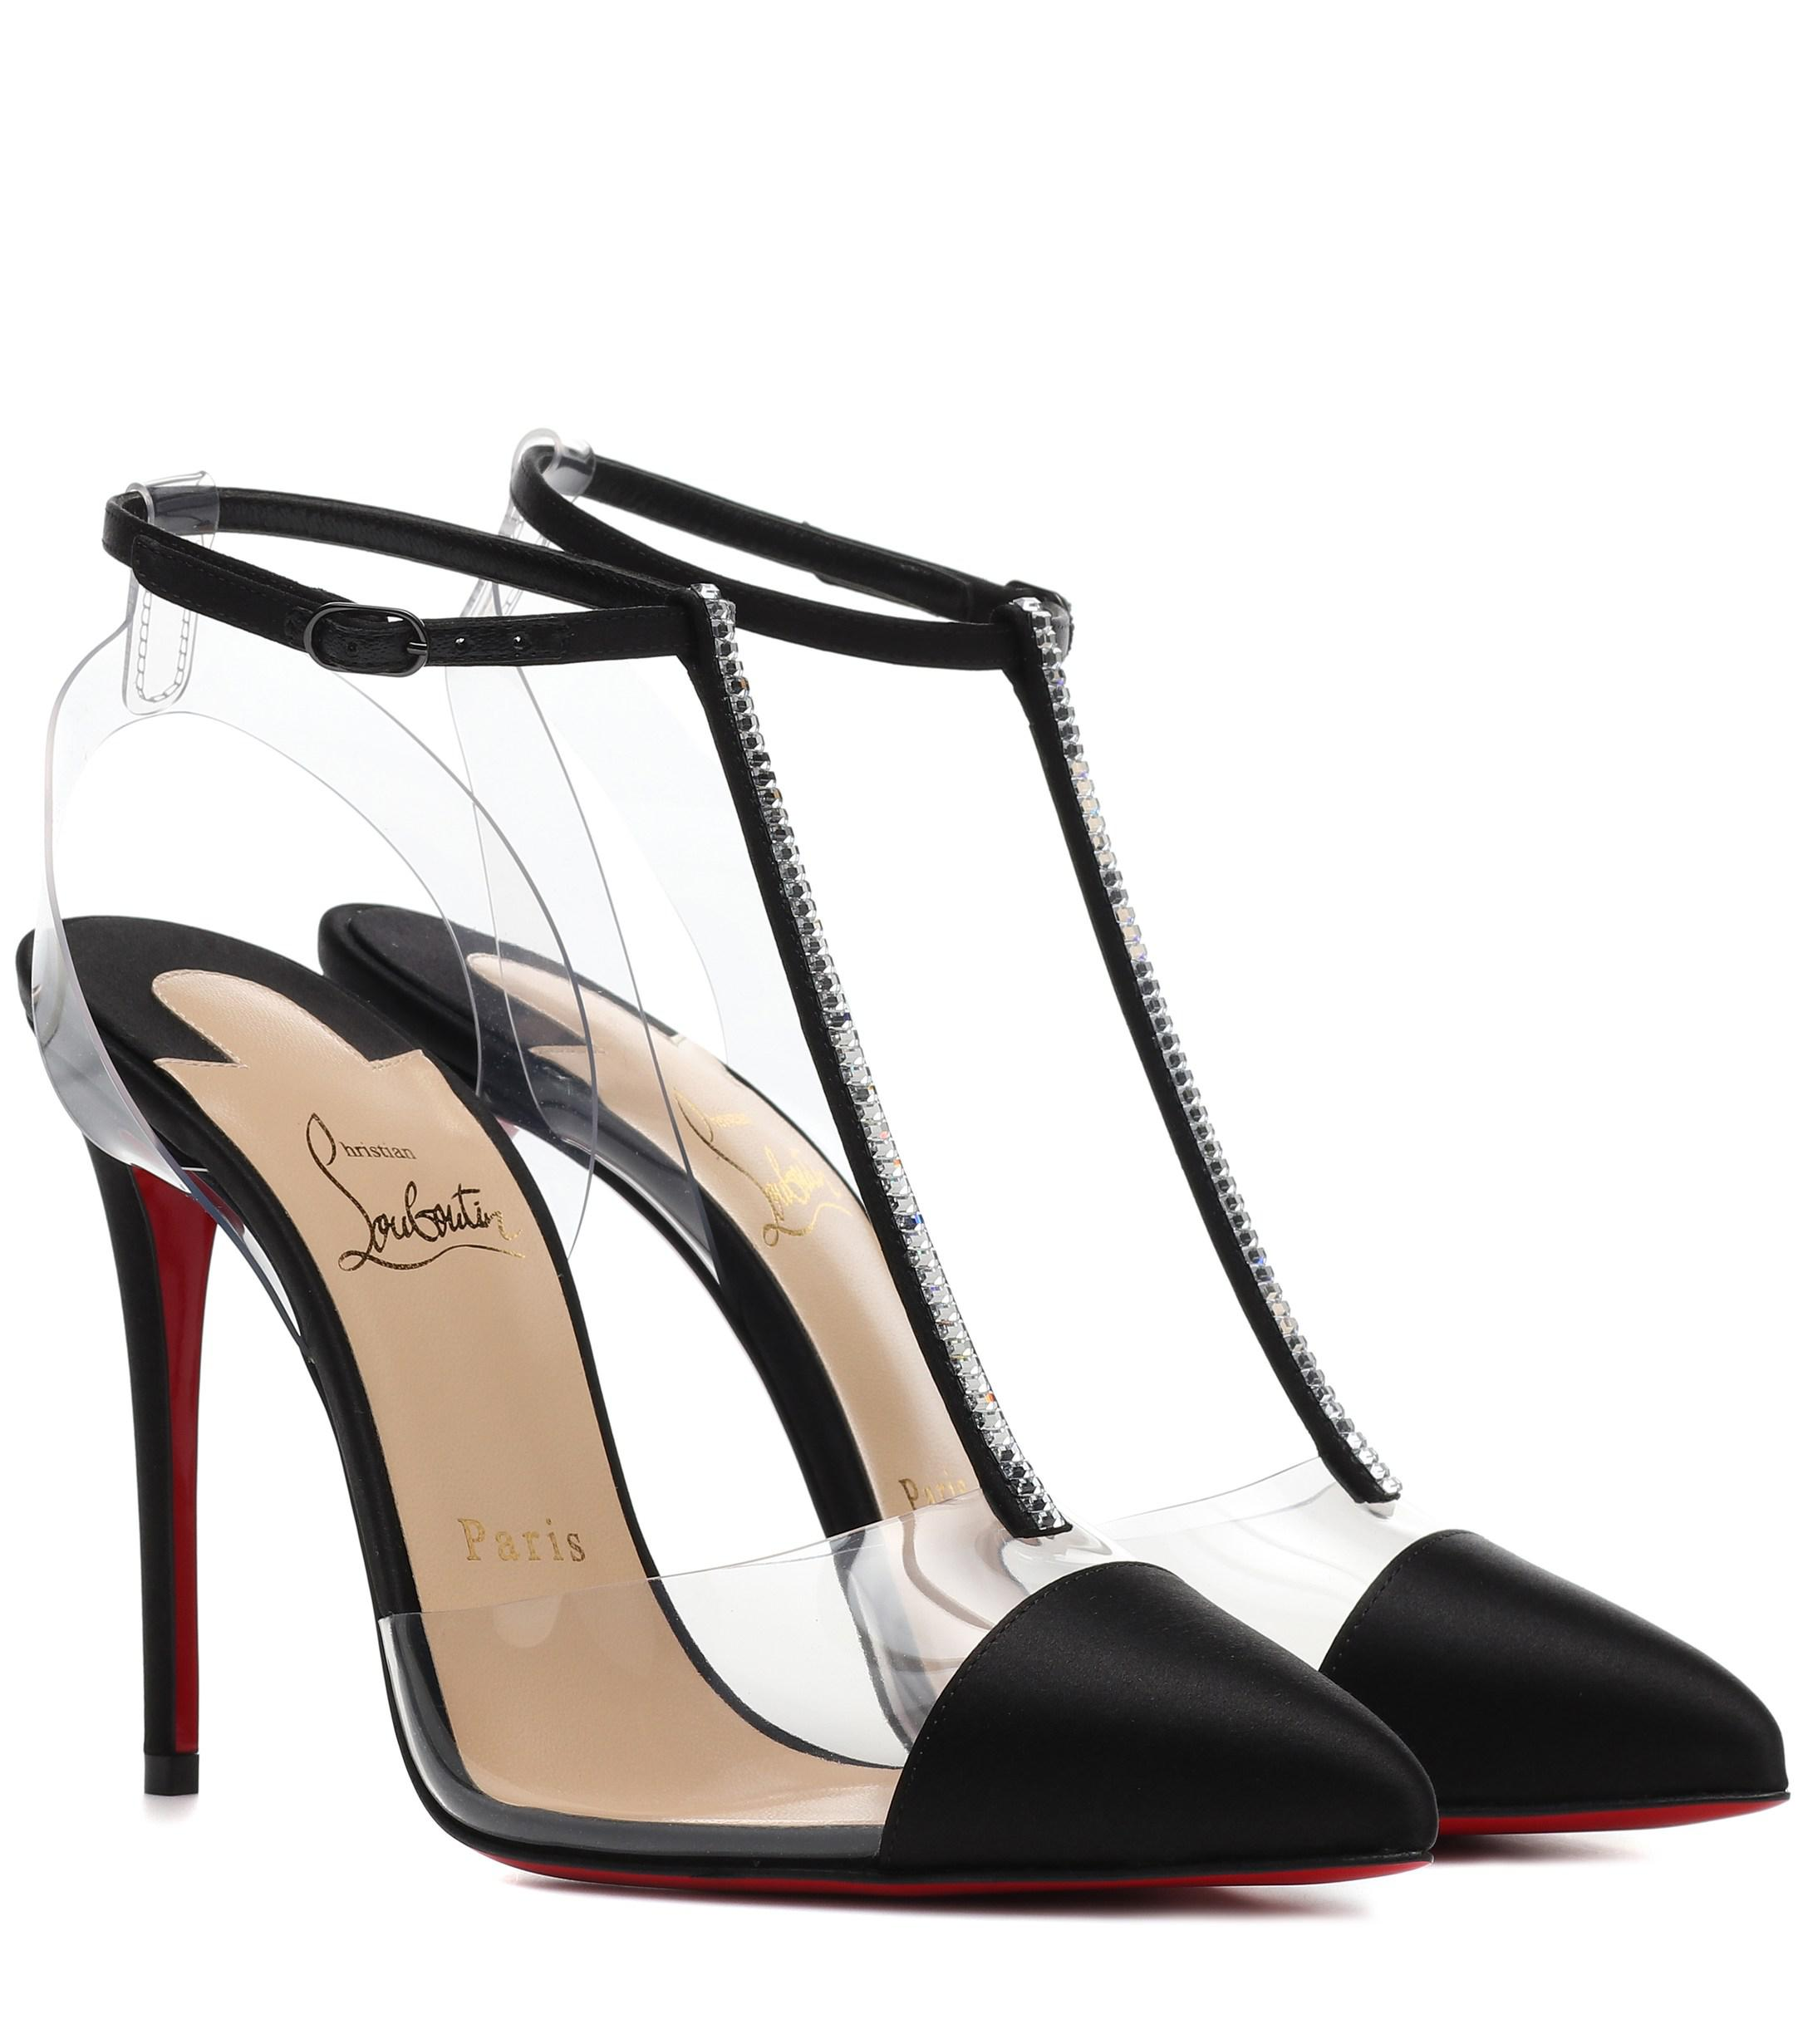 be09413c6f0d Lyst - Christian Louboutin Nosy Strass Red Sole Pumps in Black - Save 9%